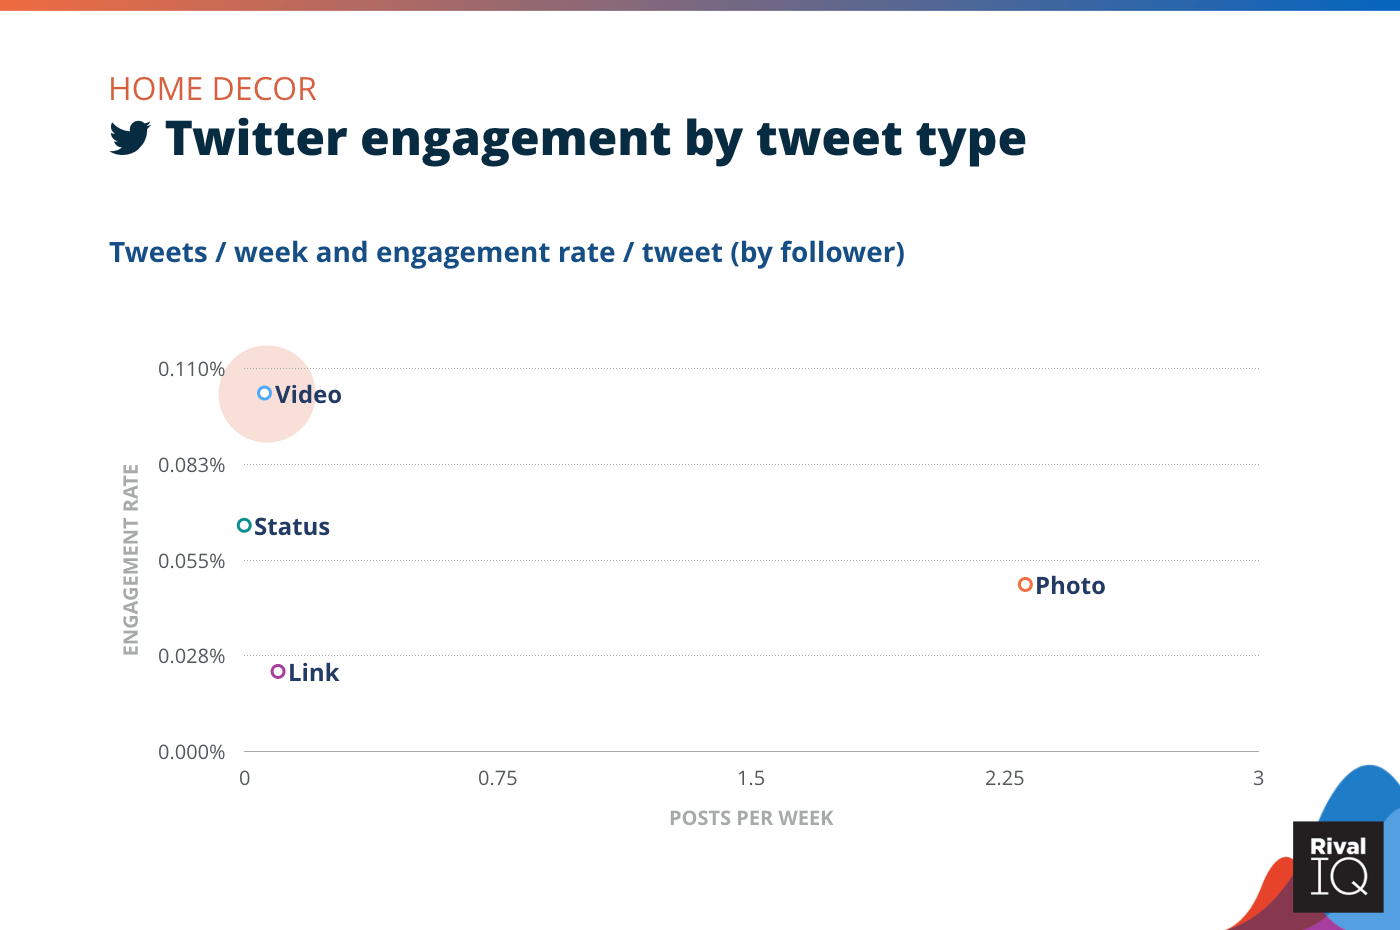 Chart of Twitter posts per week and engagement rate by tweet type, Home Decor